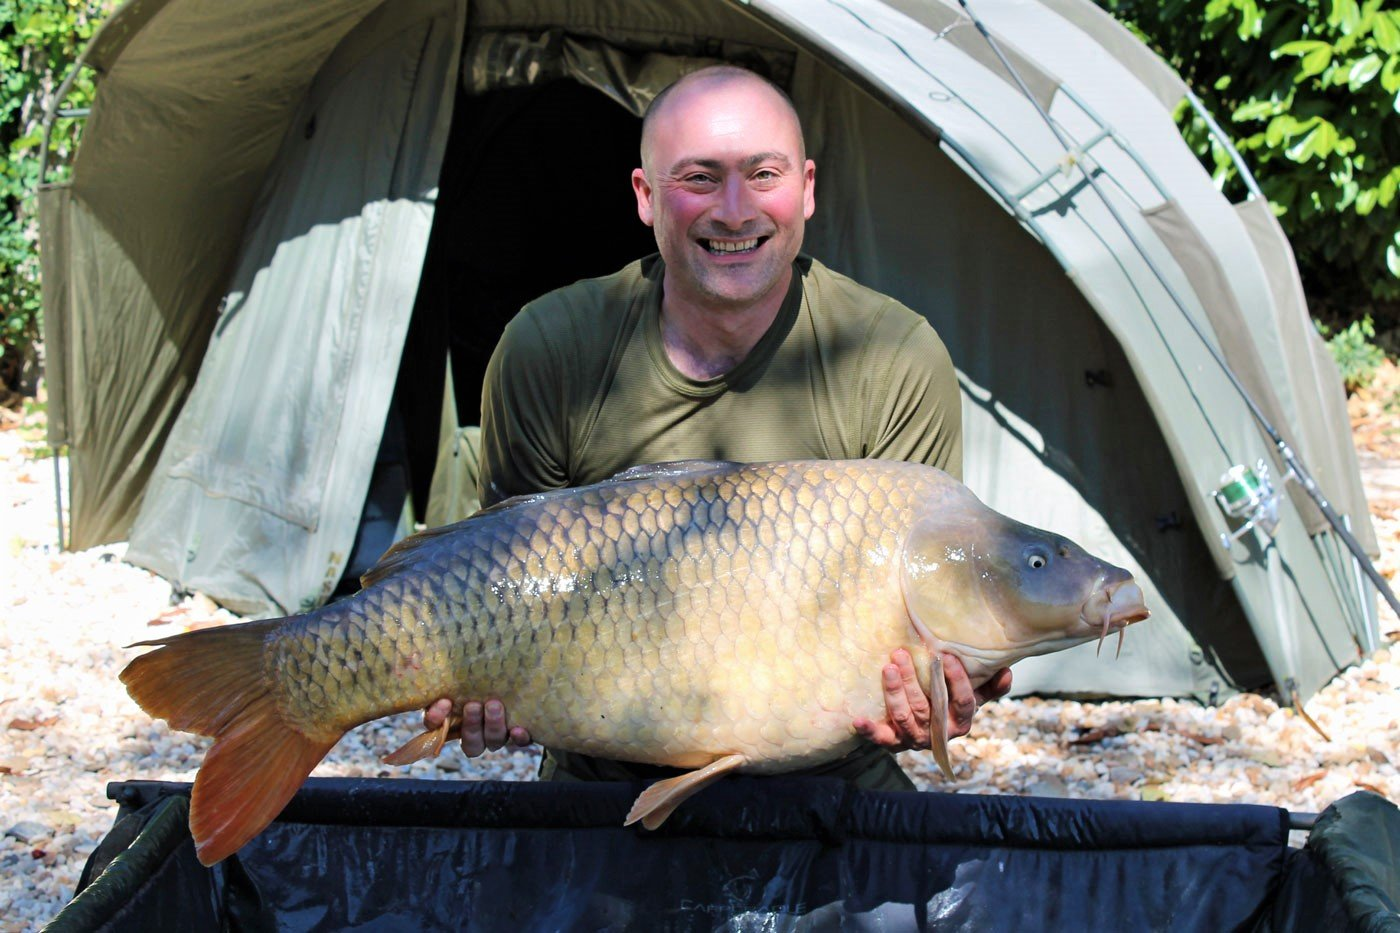 angler in france Simon with a 43lb common carp